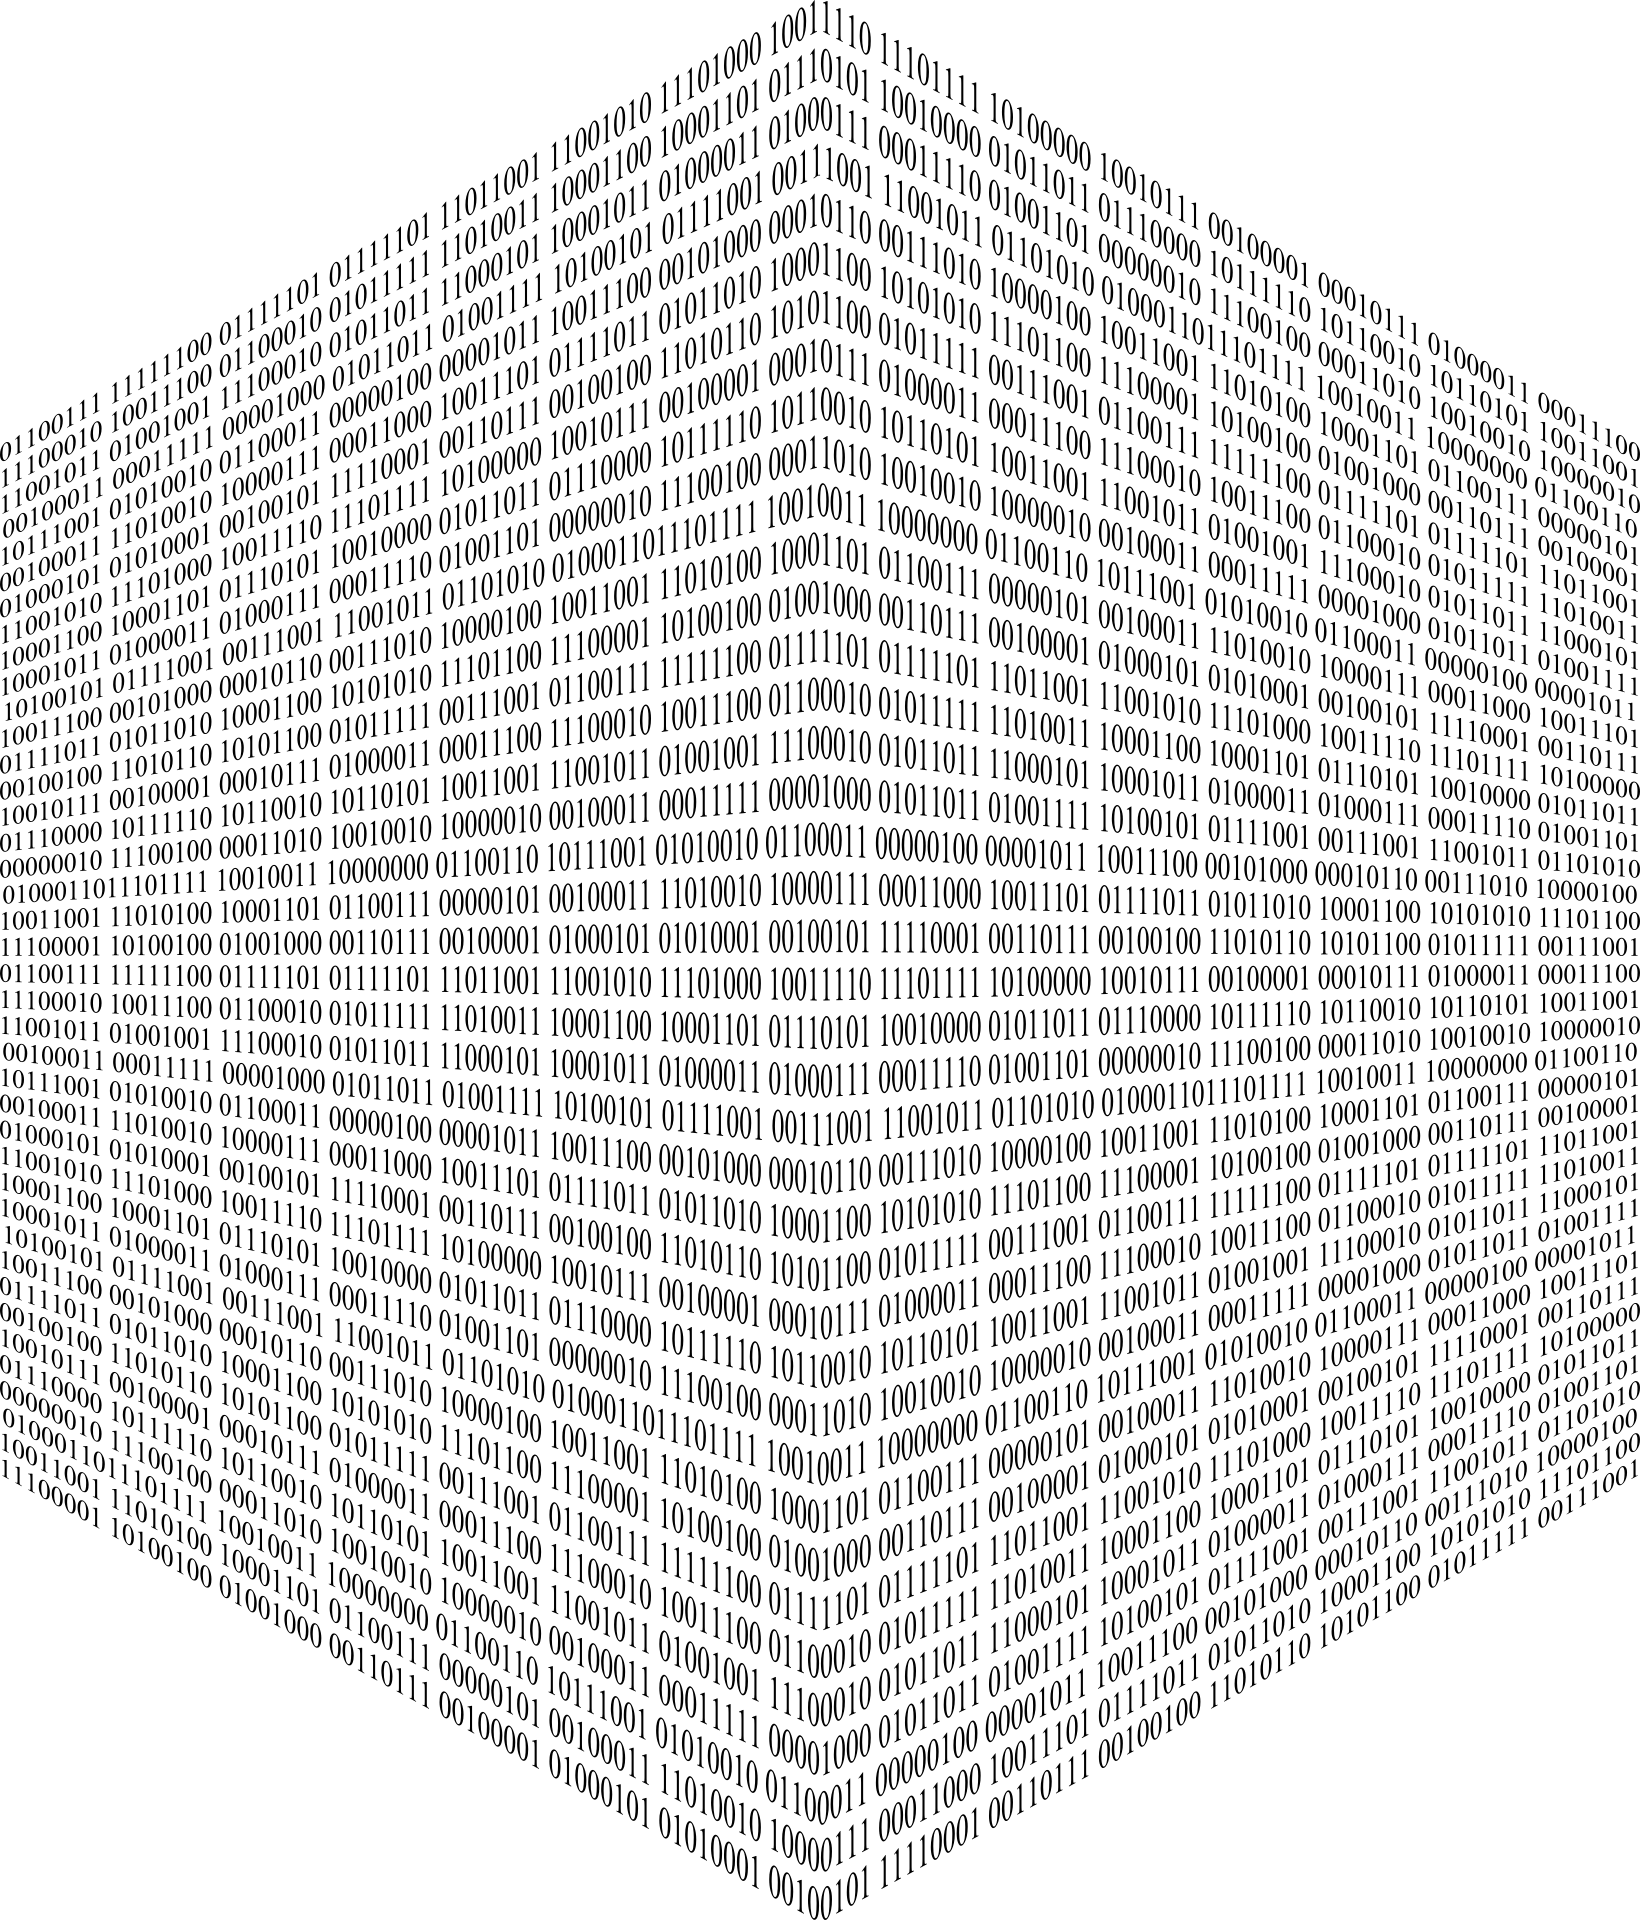 Cube With Binary Code Free Image